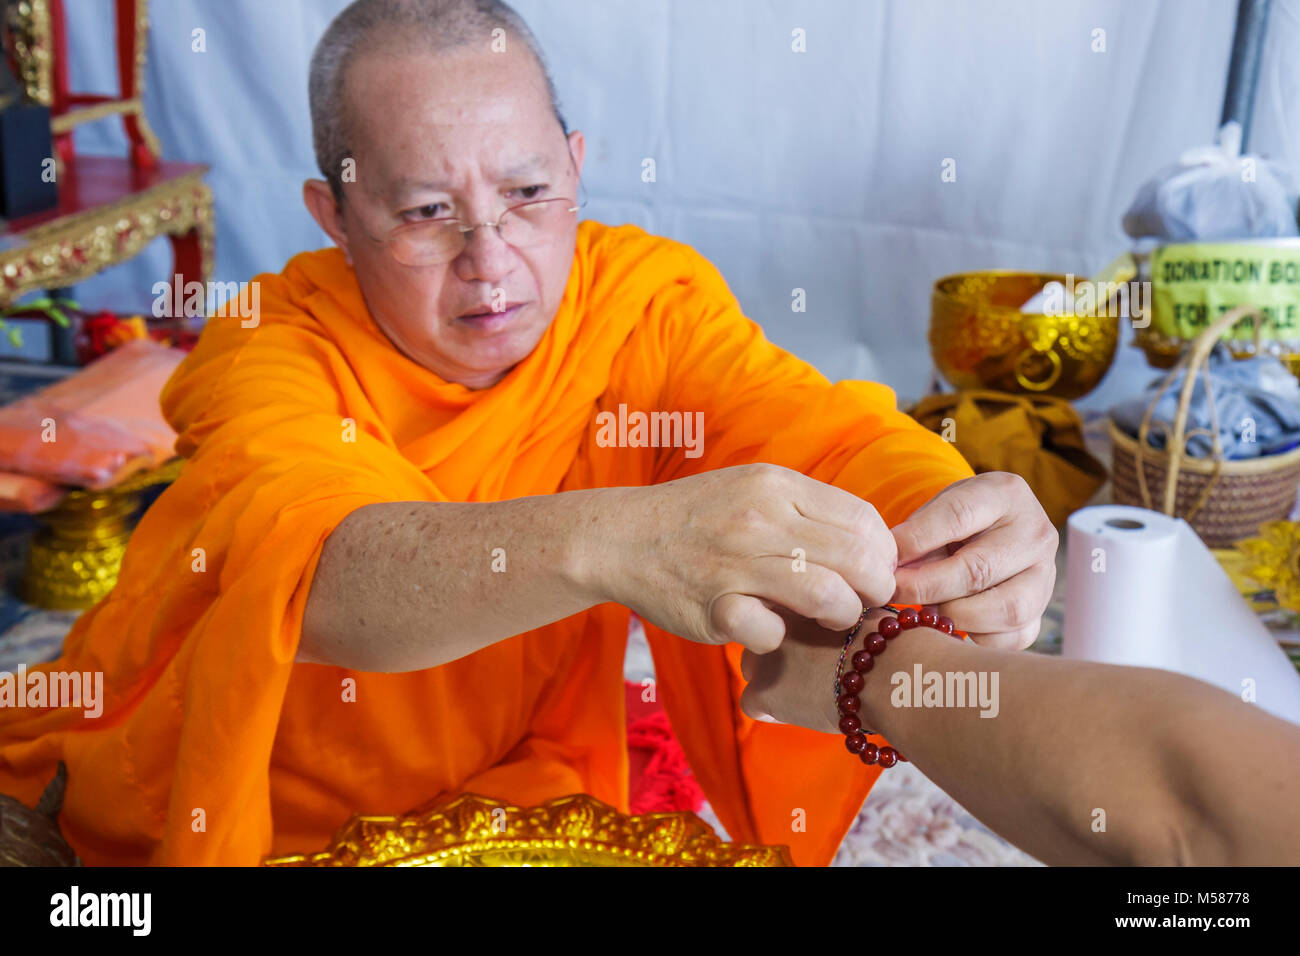 buddhist single men in orange Register for both slow dating and the buddha walks into a bar and attend   project, shambhala sun, buddhadharma, and good men project.